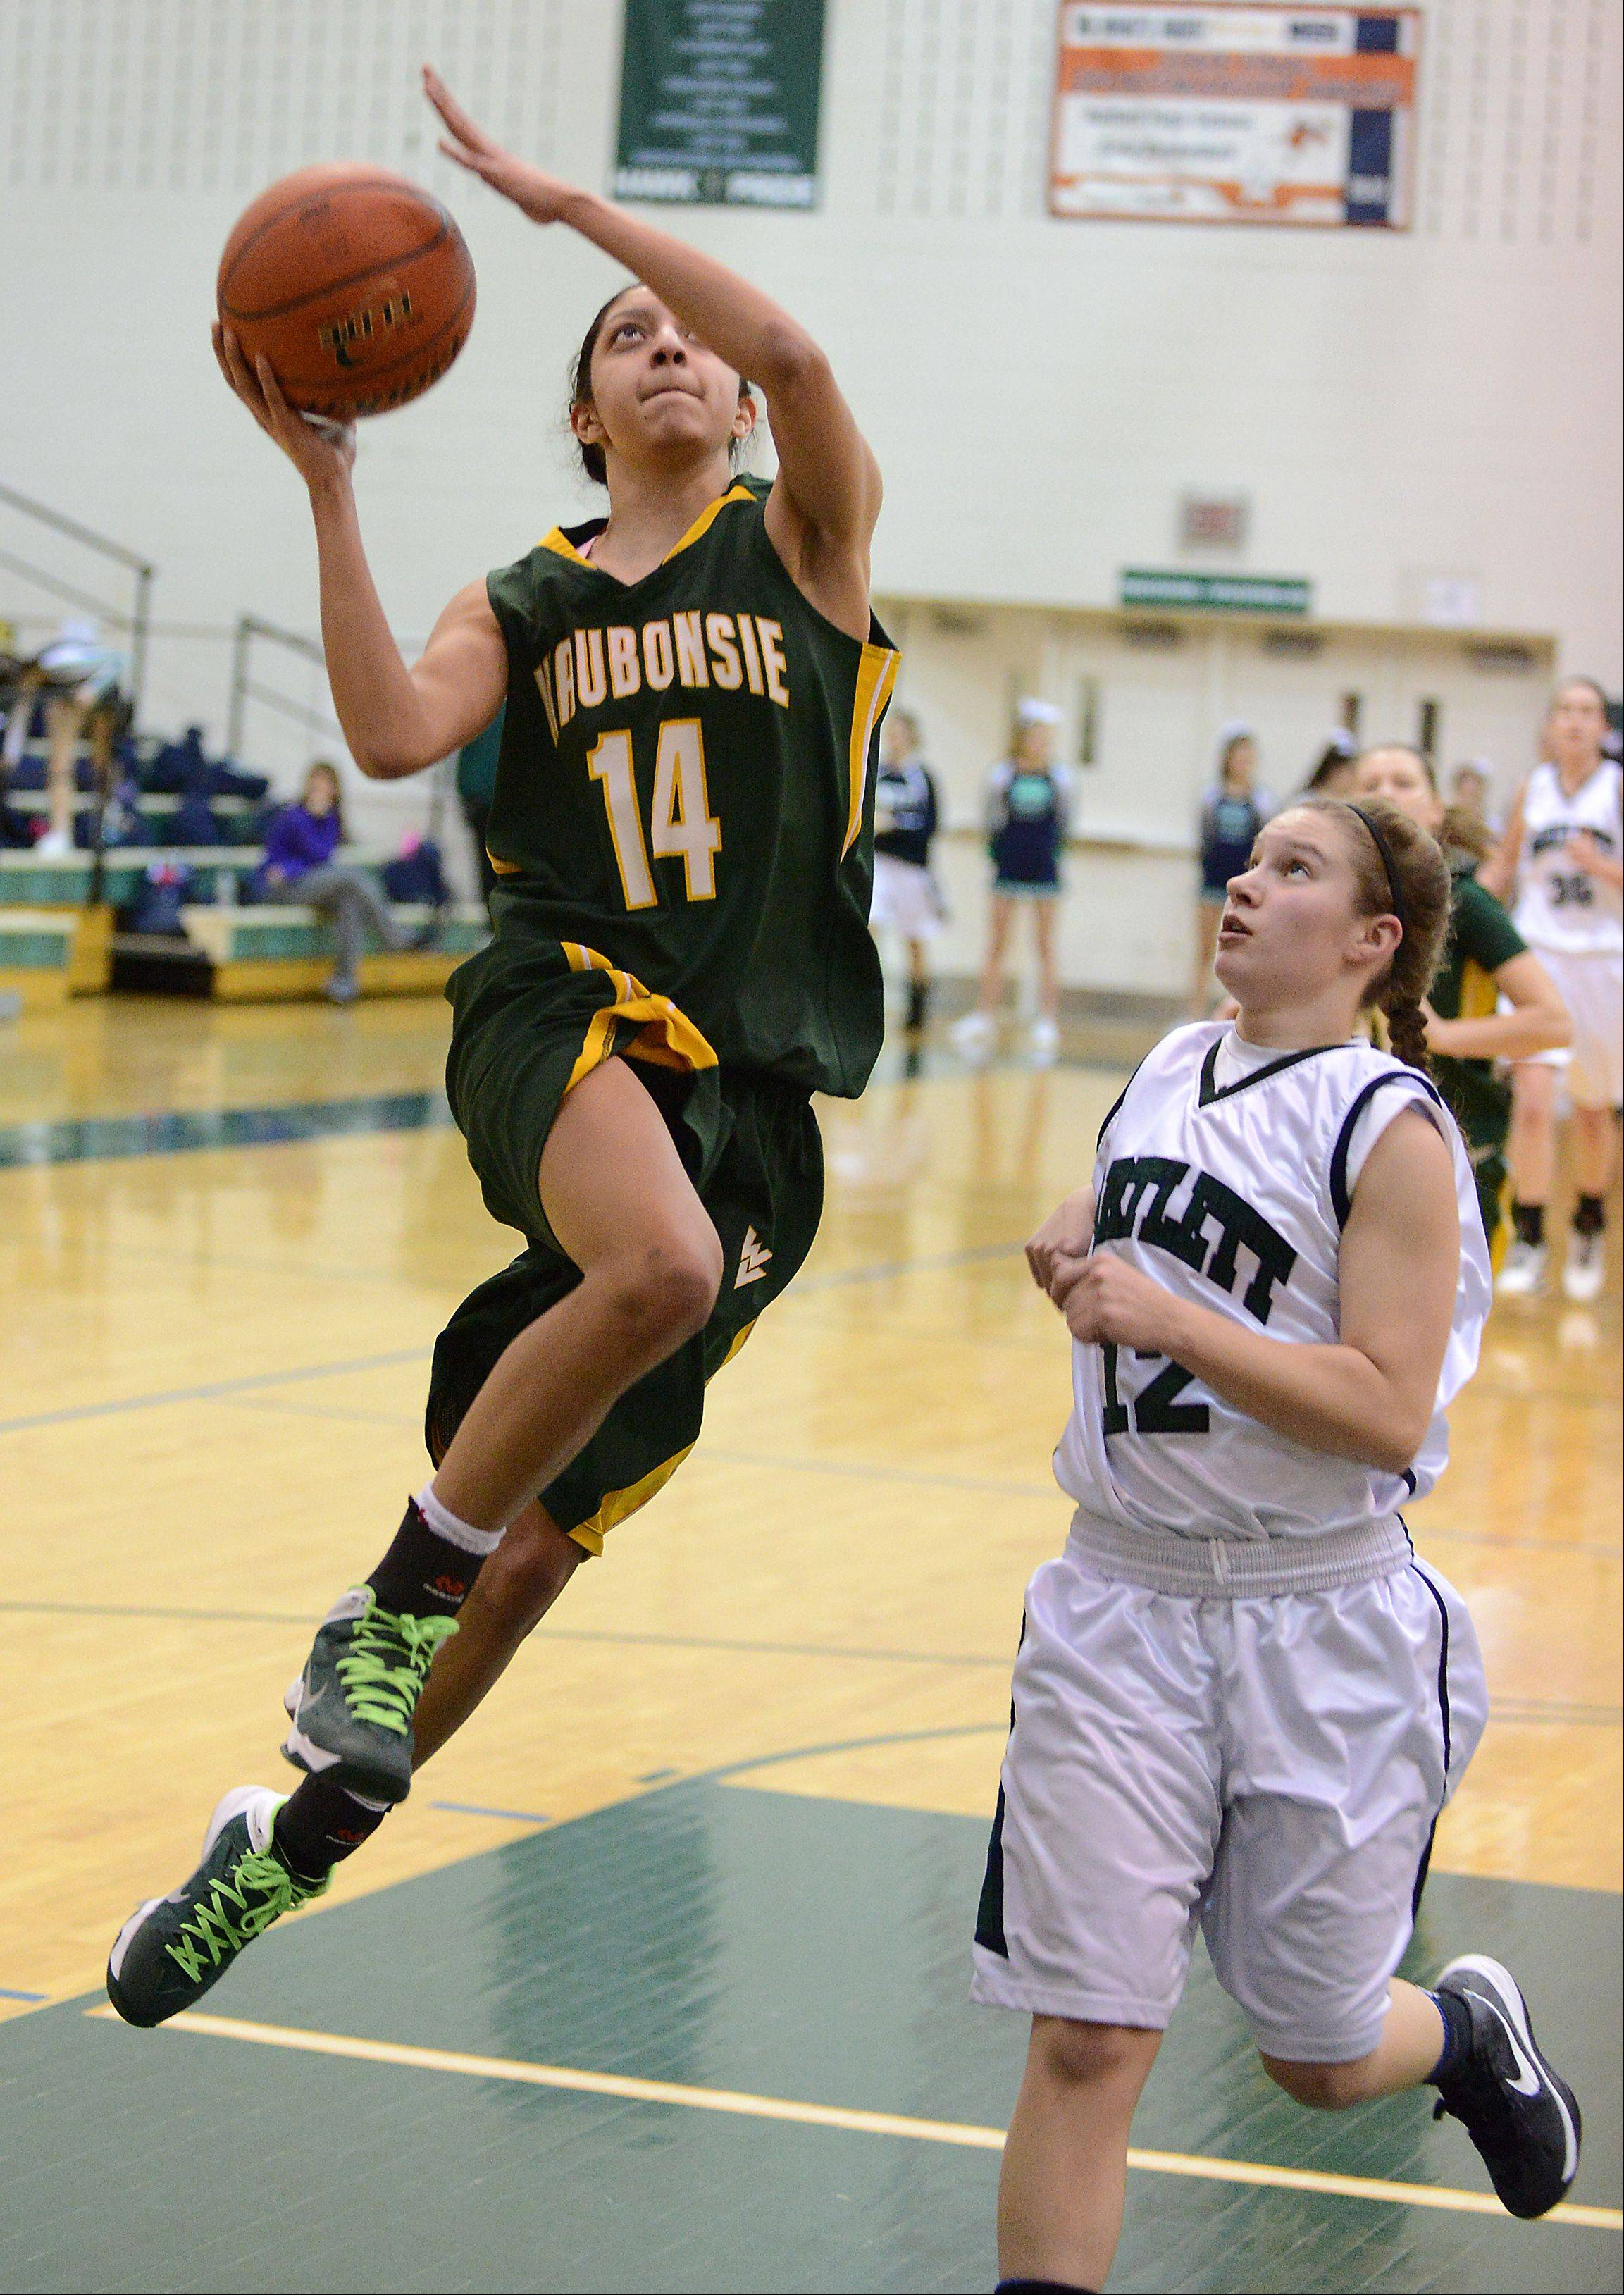 Waubonsie Valley's Andrea Colin scores on a breakaway as Bartlett's Ashley Johnson looks on.